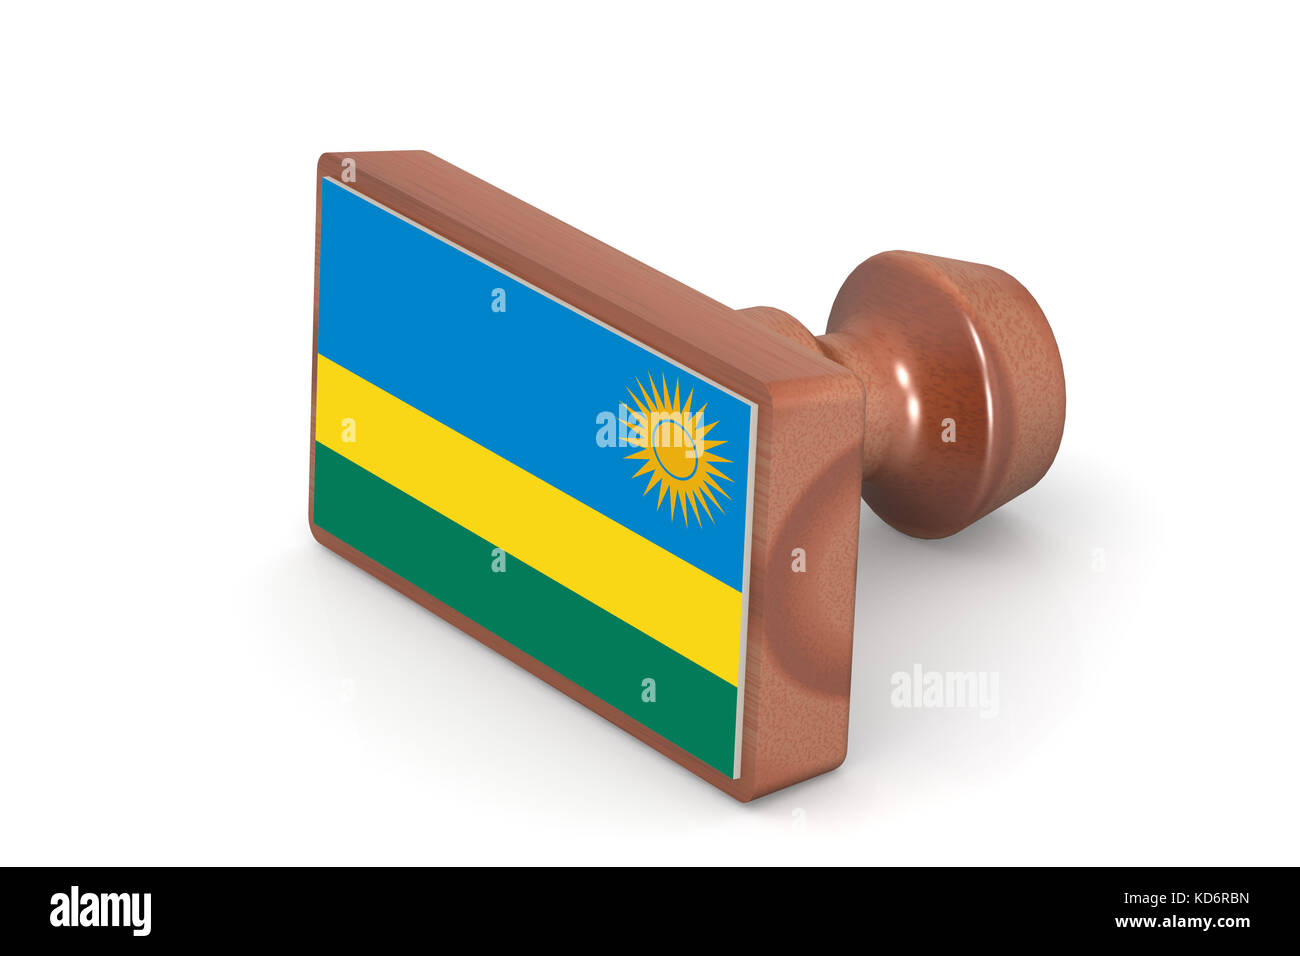 Wooden stamp with Rwanda flag image with hi-res rendered artwork that could be used for any graphic design. - Stock Image